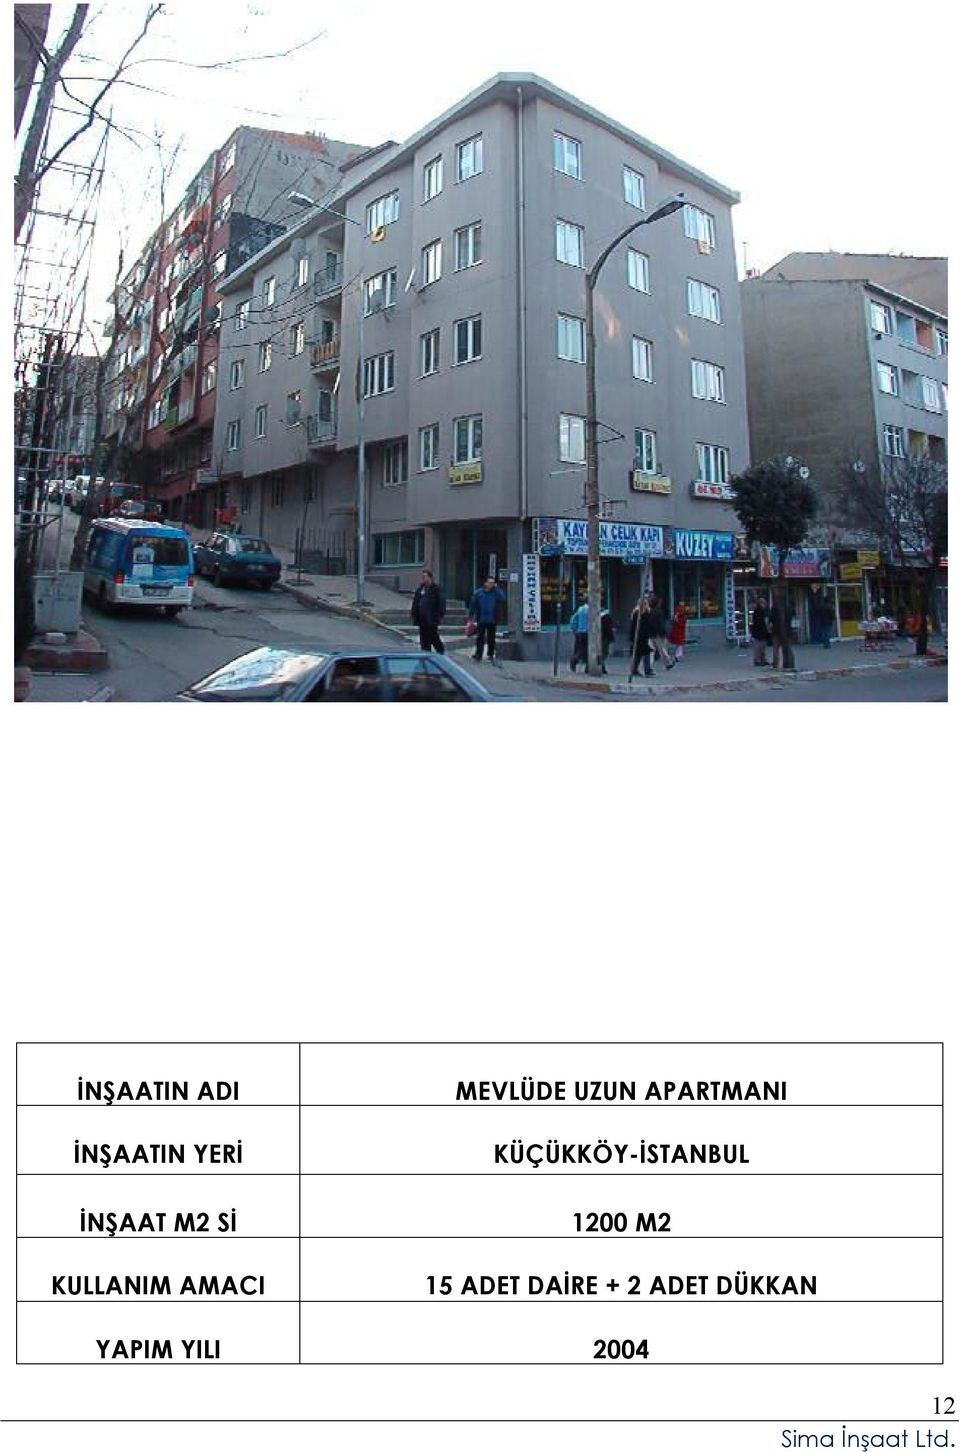 1200 M2 15 ADET DAİRE + 2